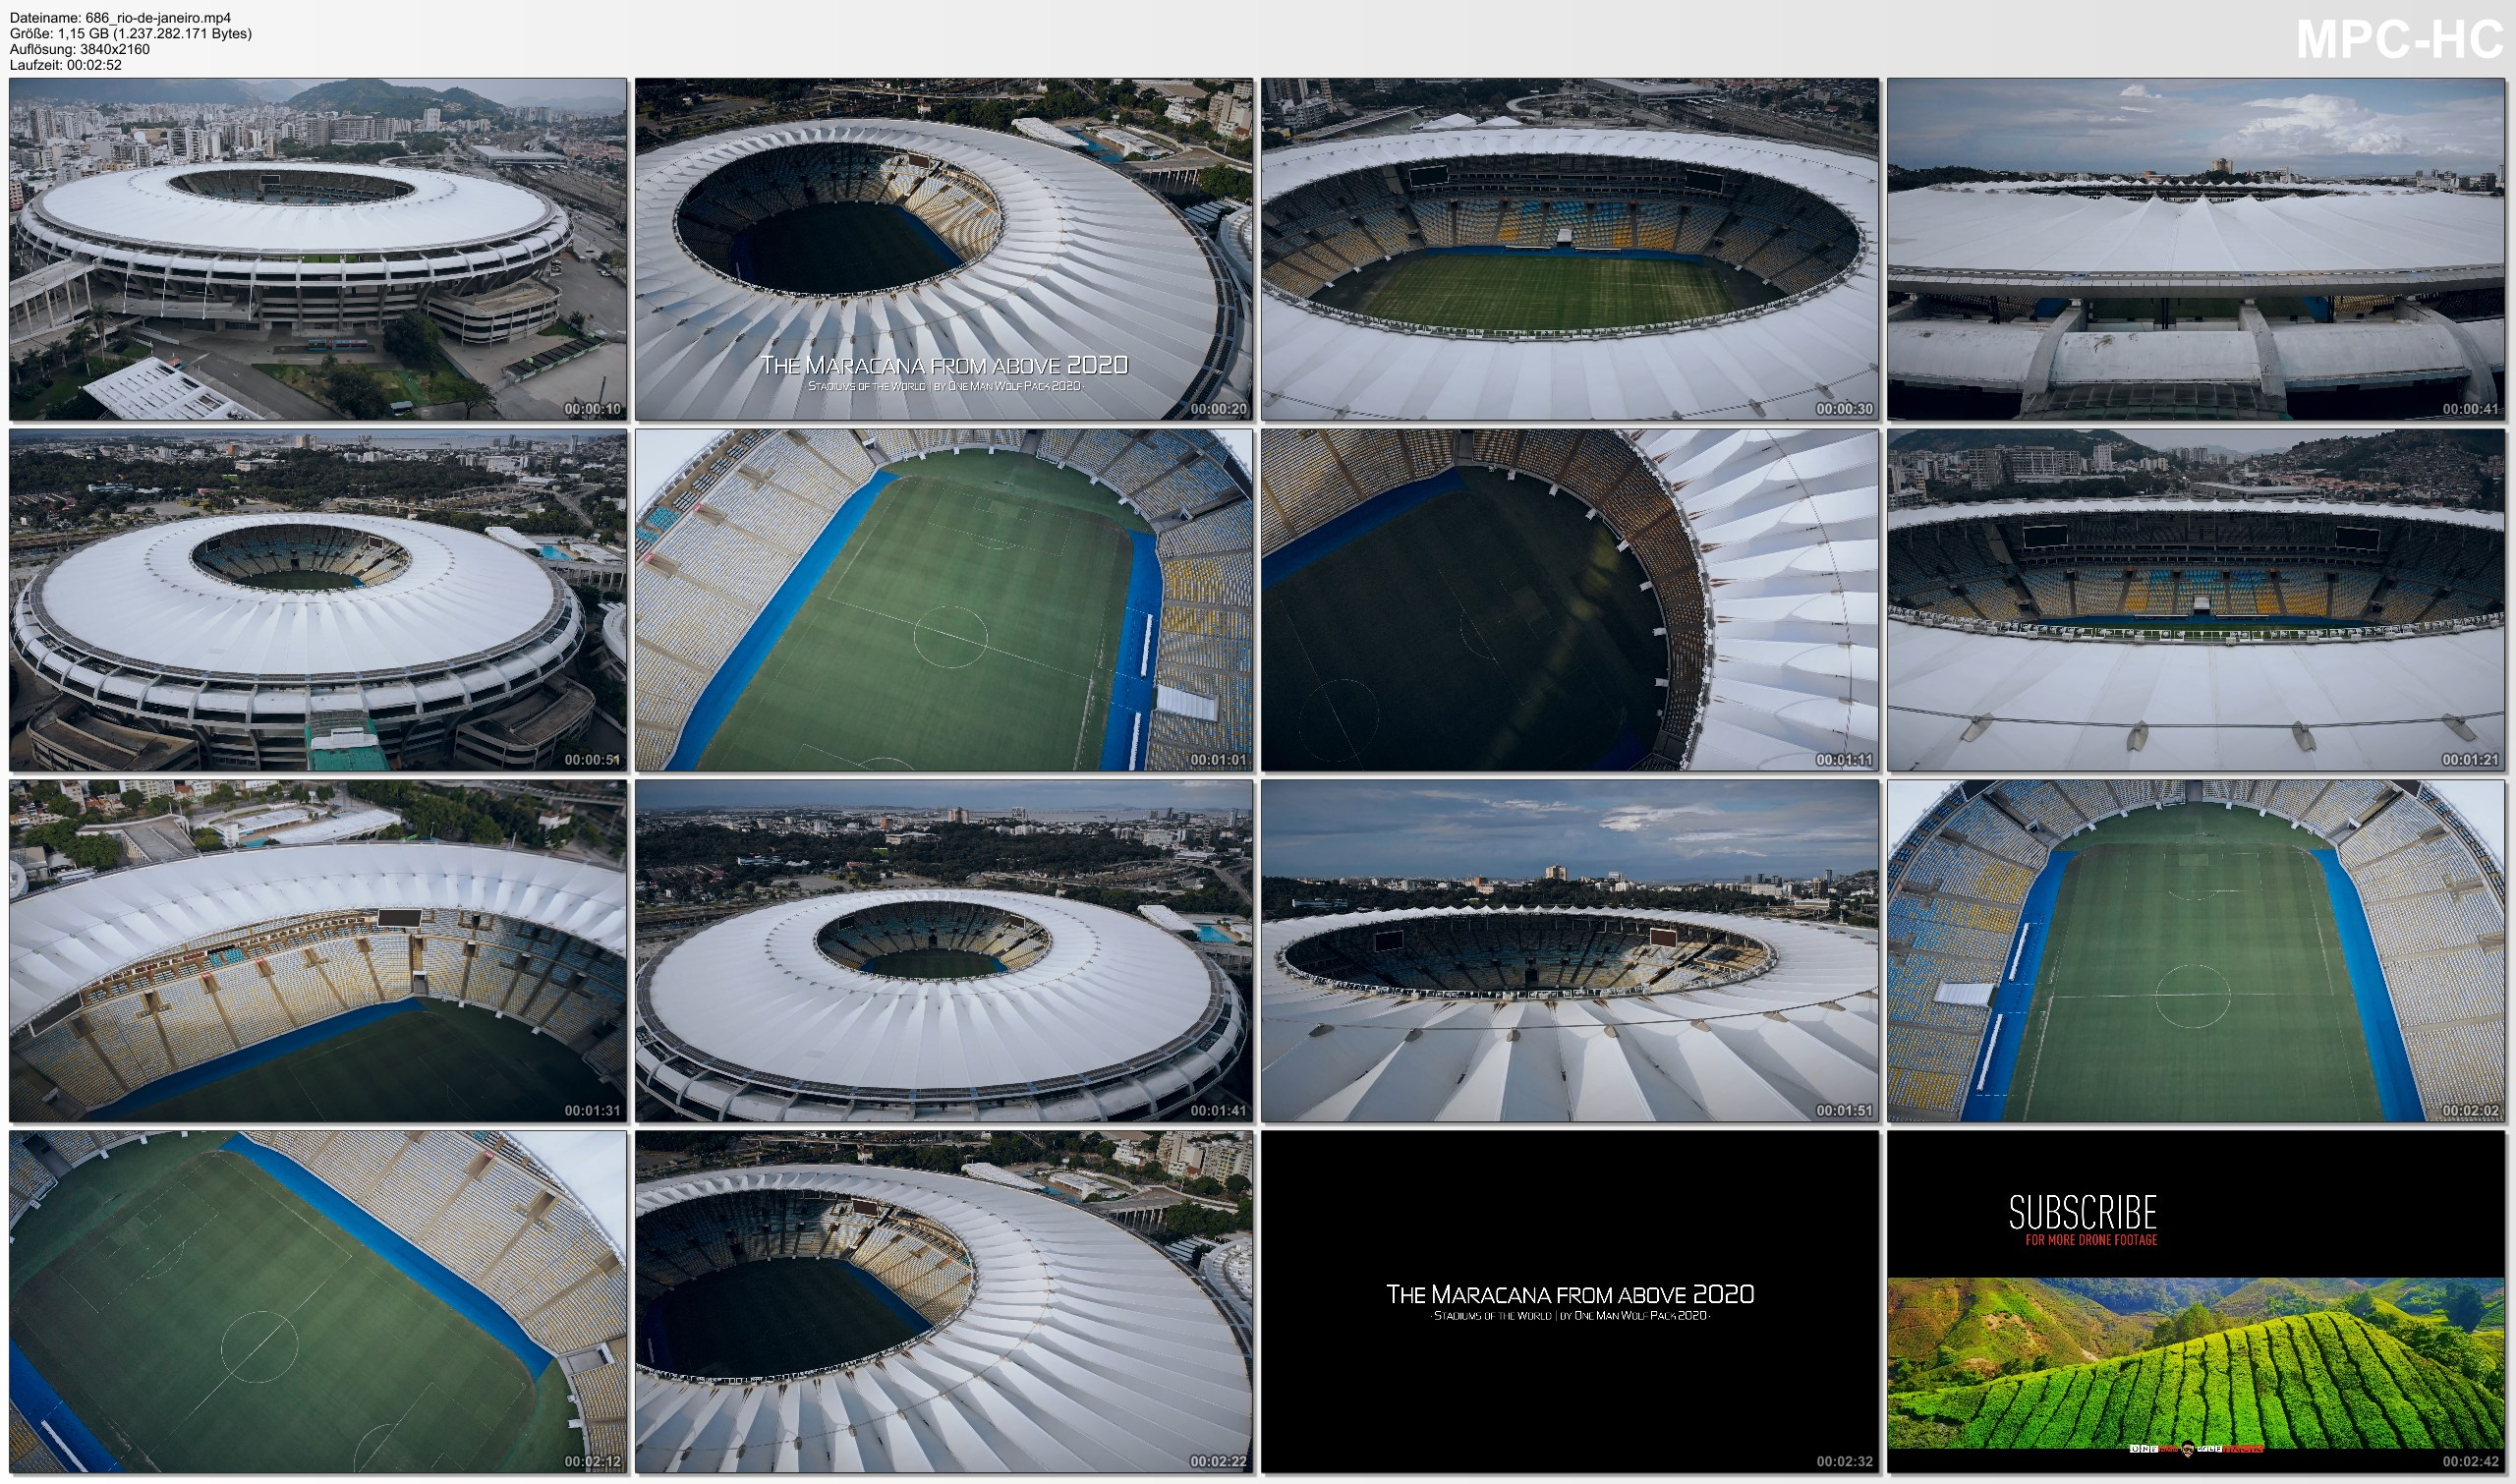 Drone Pictures from Video 【4K】Maracanã | The Most Beautiful Stadium from Above | Cinematic Wolf Aerial™ Drone Film